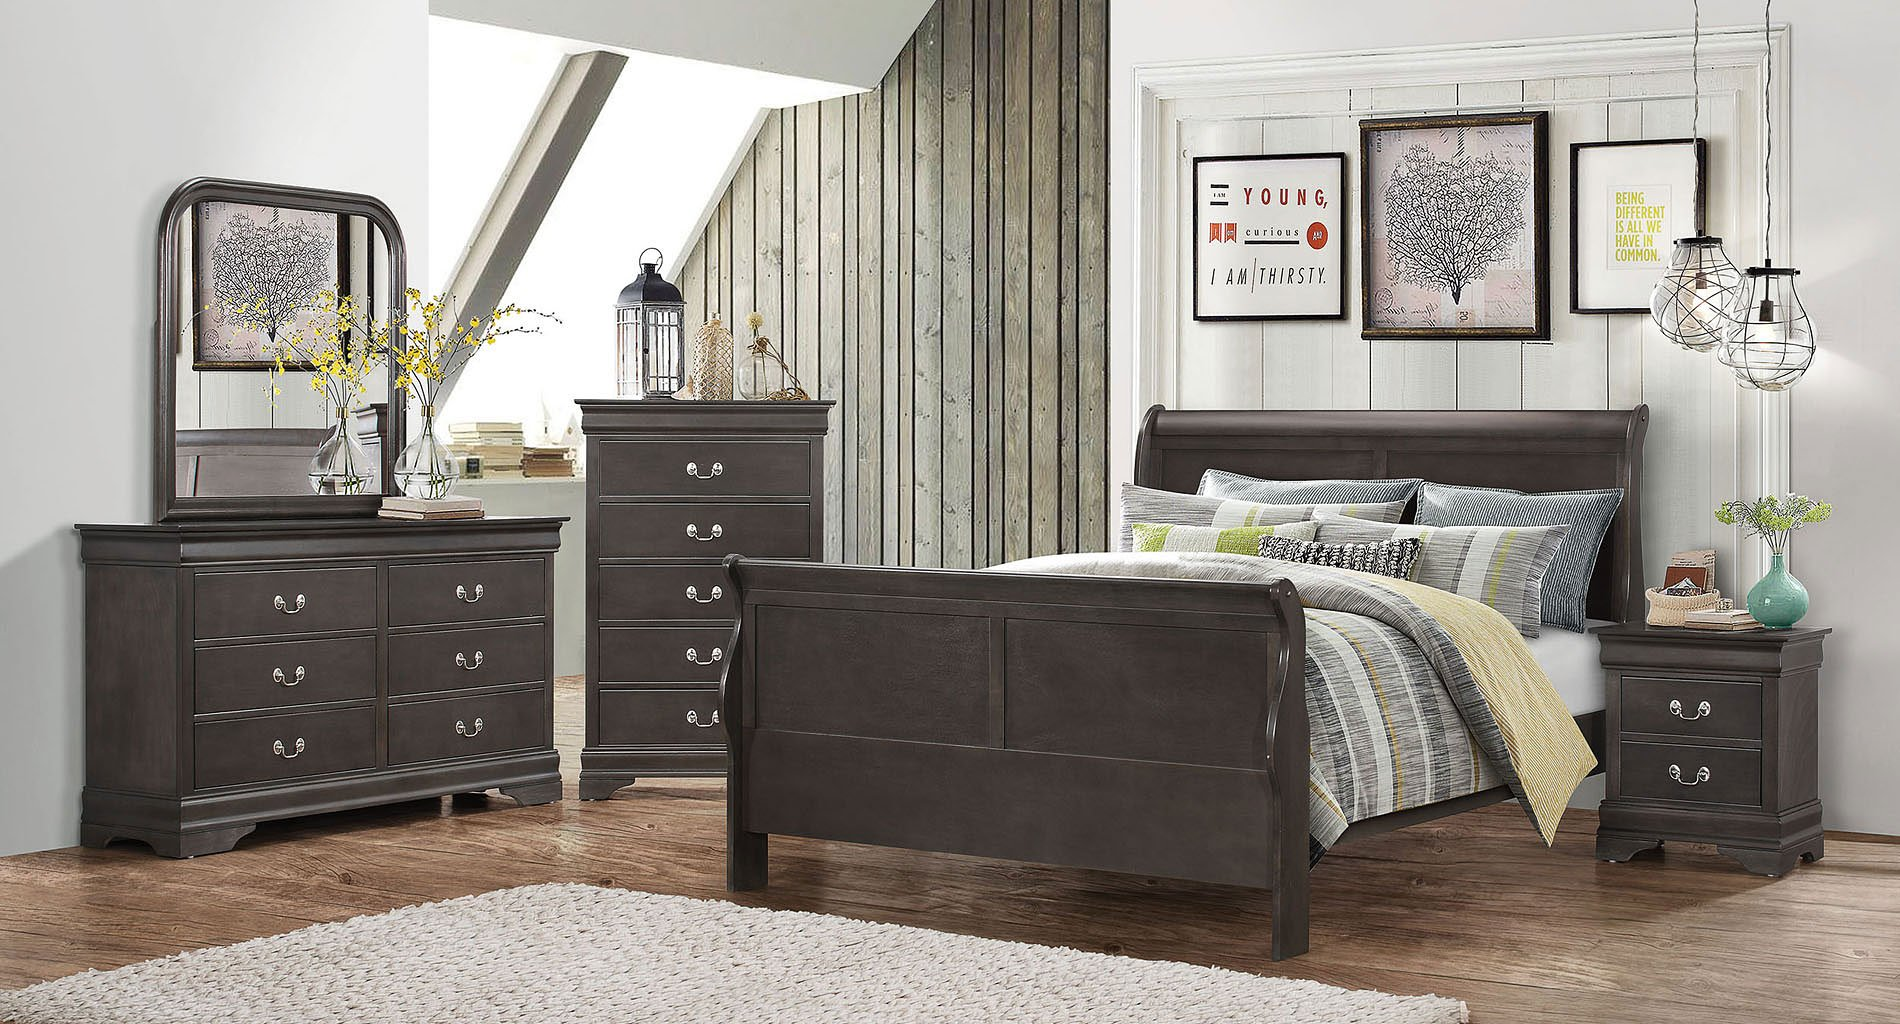 hershel louis philippe bedroom set dark grey by coaster 15928 | 201131q br set 1